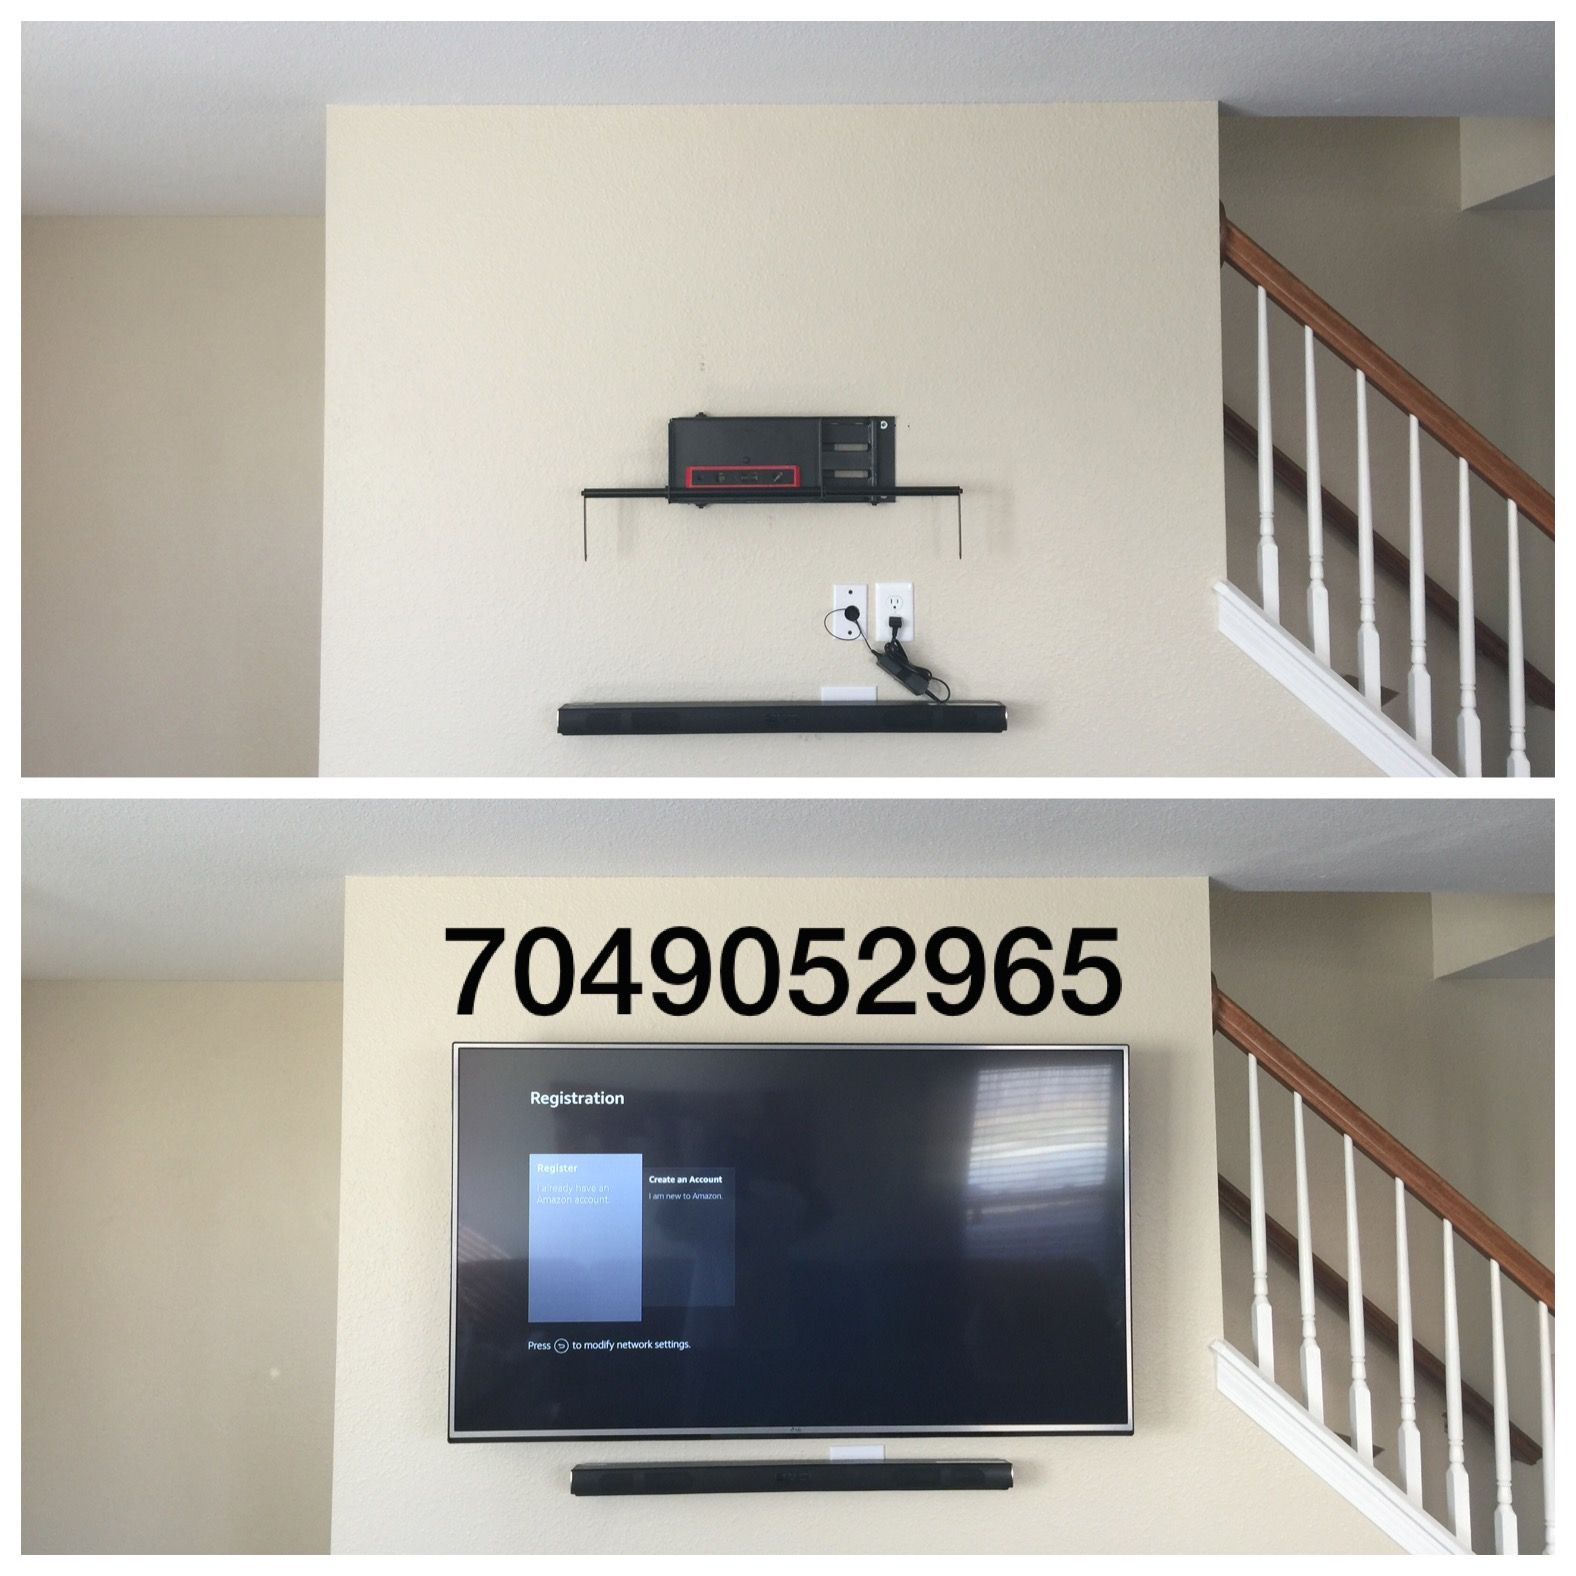 Our professional commercial TV installation team provides expert ...